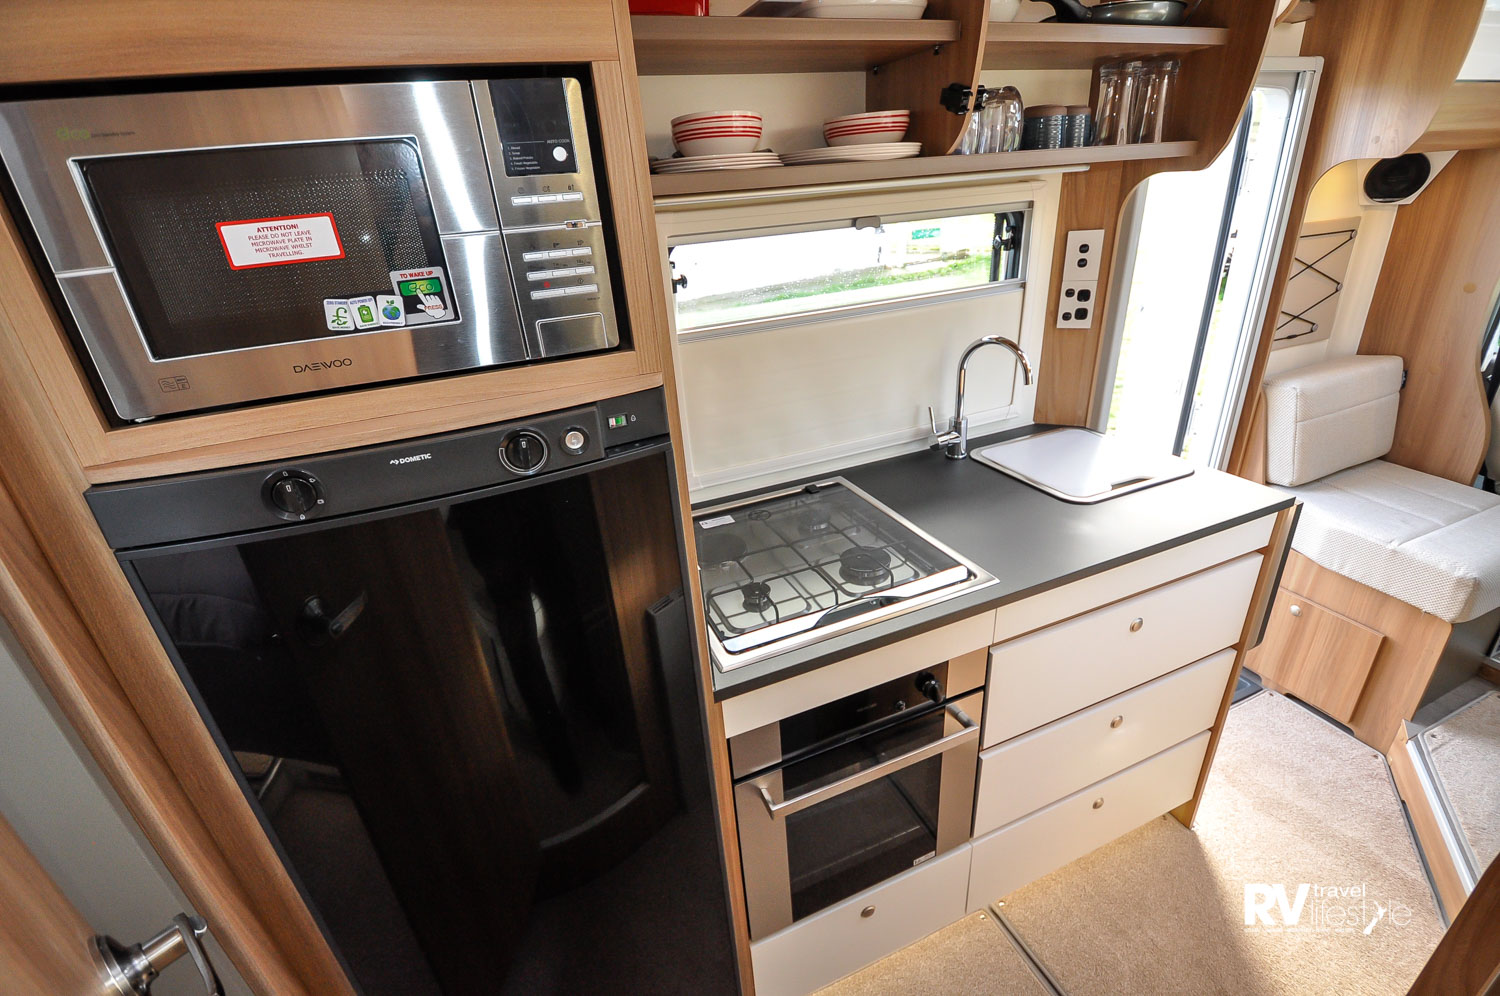 The kitchen is well fitted with a stainless steel 800 watt microwave, a Dometic 145L fridge with removeable internal freezer unit. The Thetford dual-fuel hob with electric hotplate and three gas hobs will work for all.